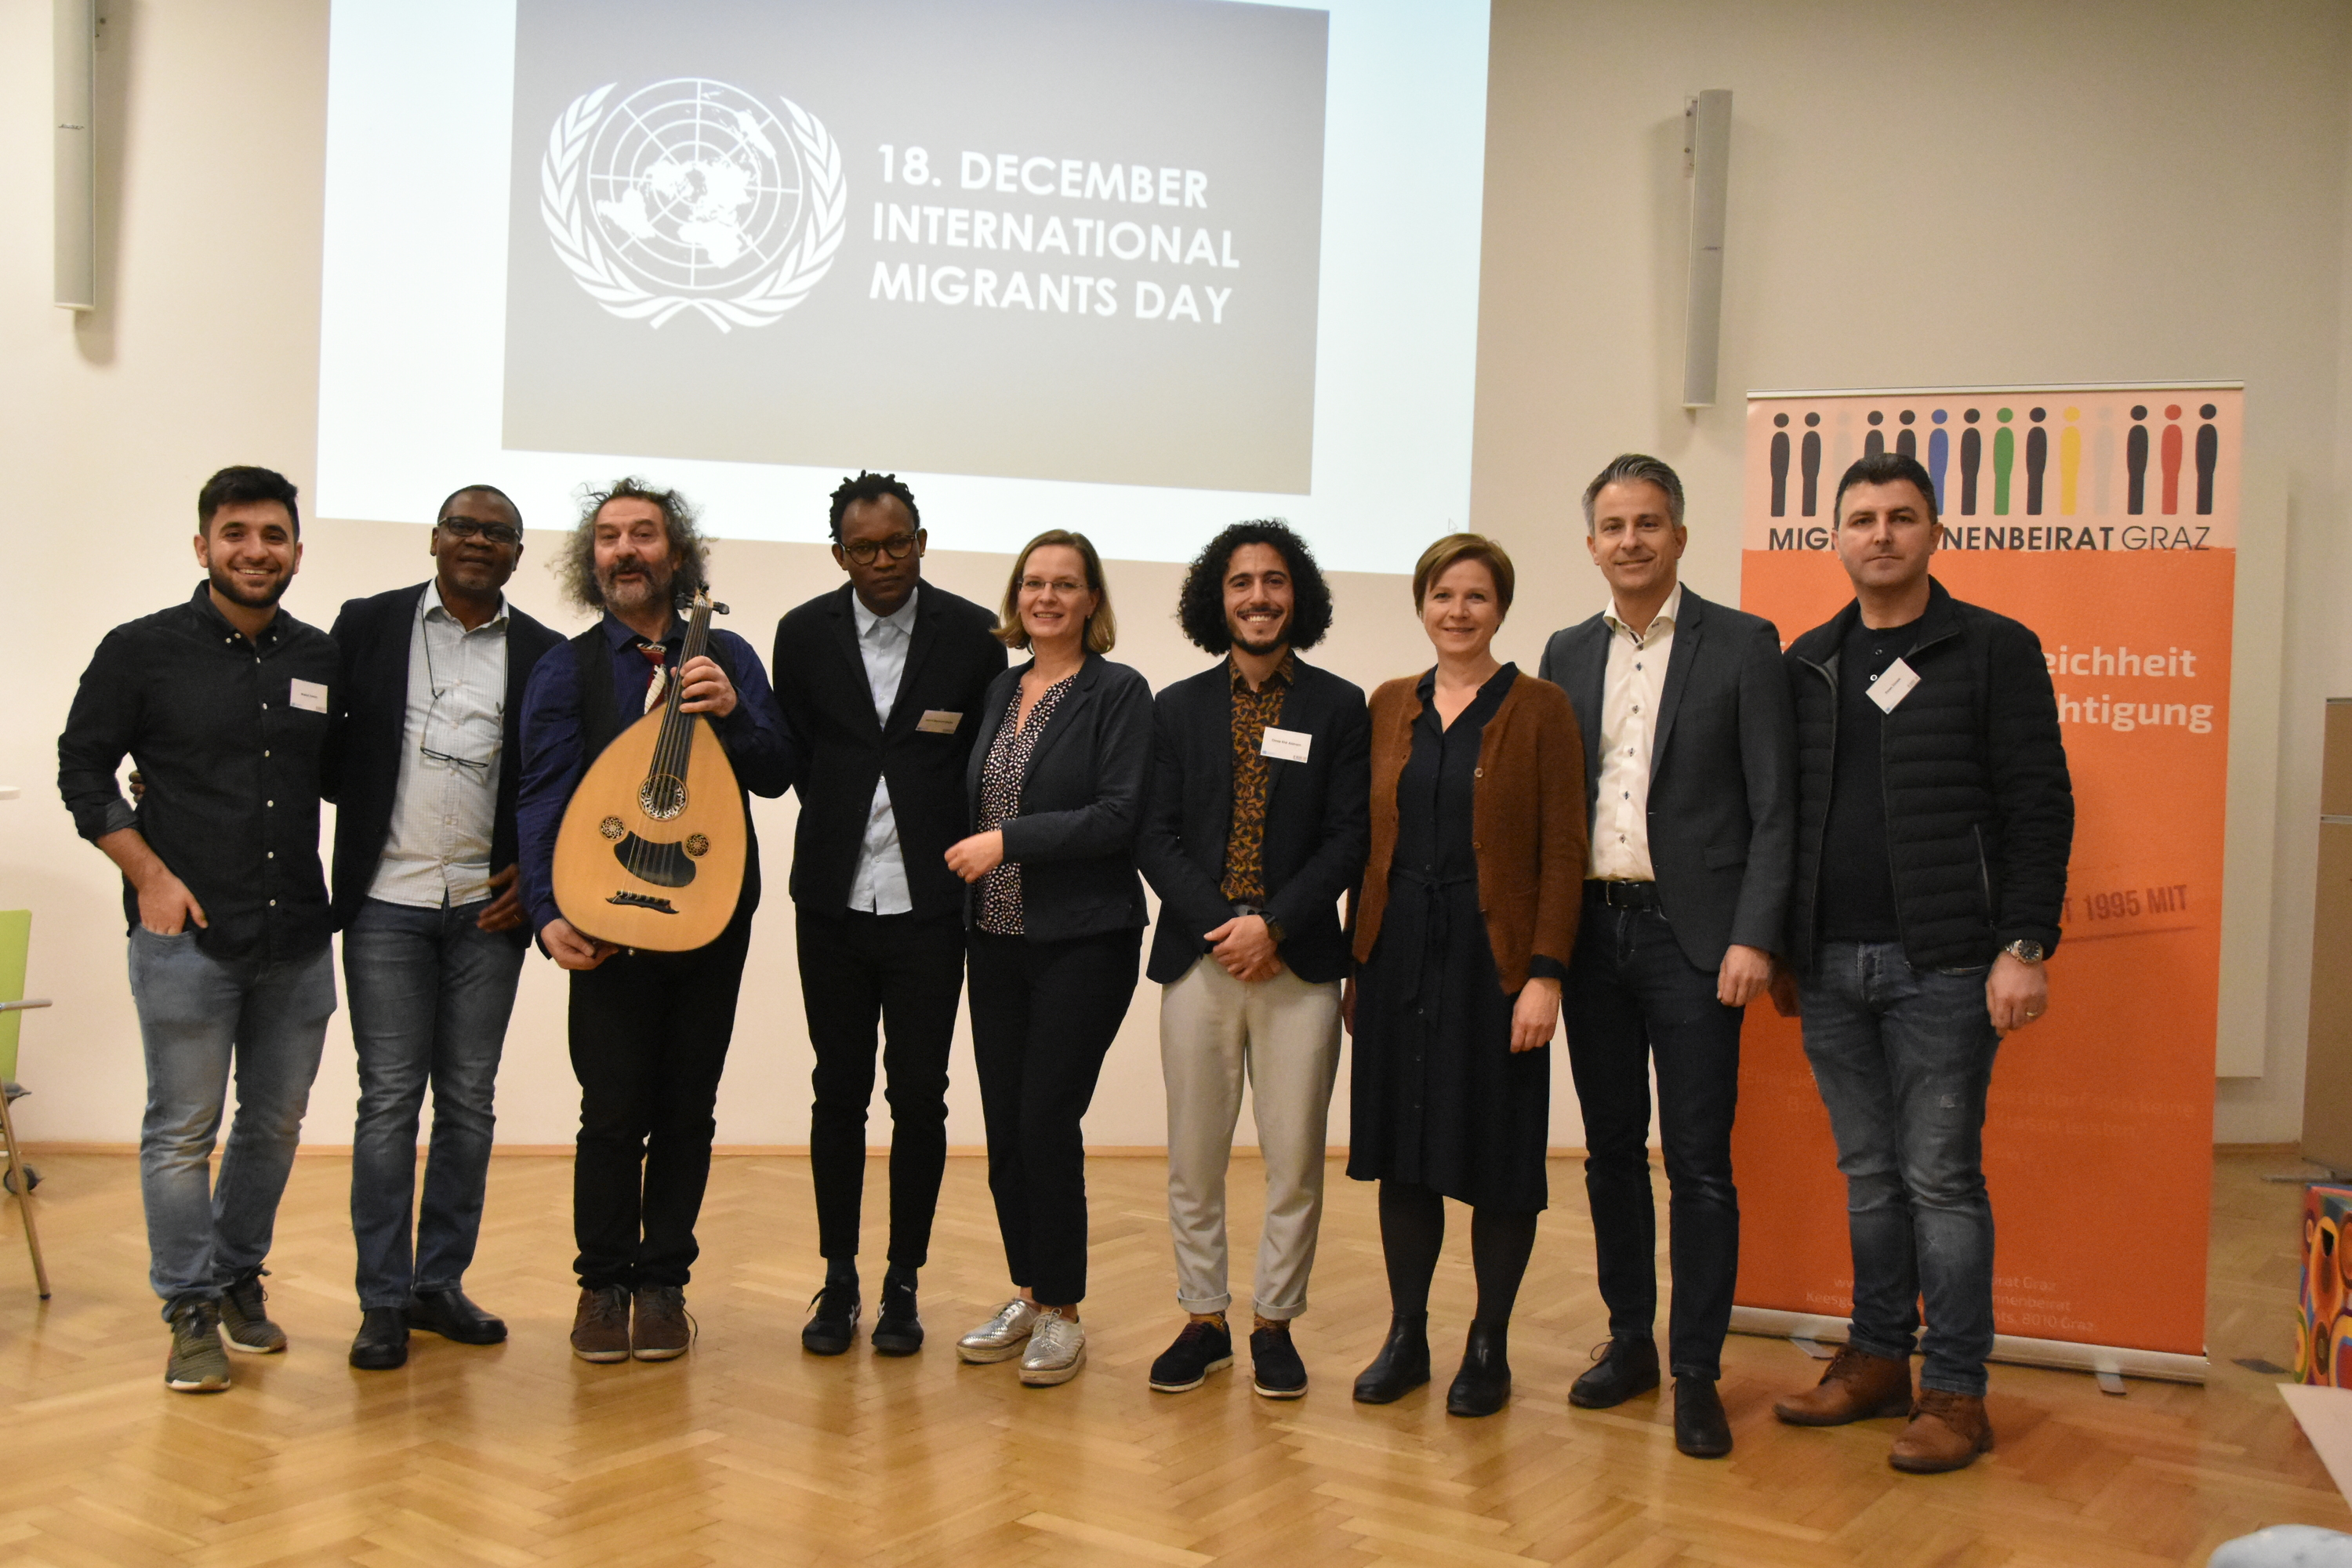 Internationaler Tag der MigrantInnen 2019